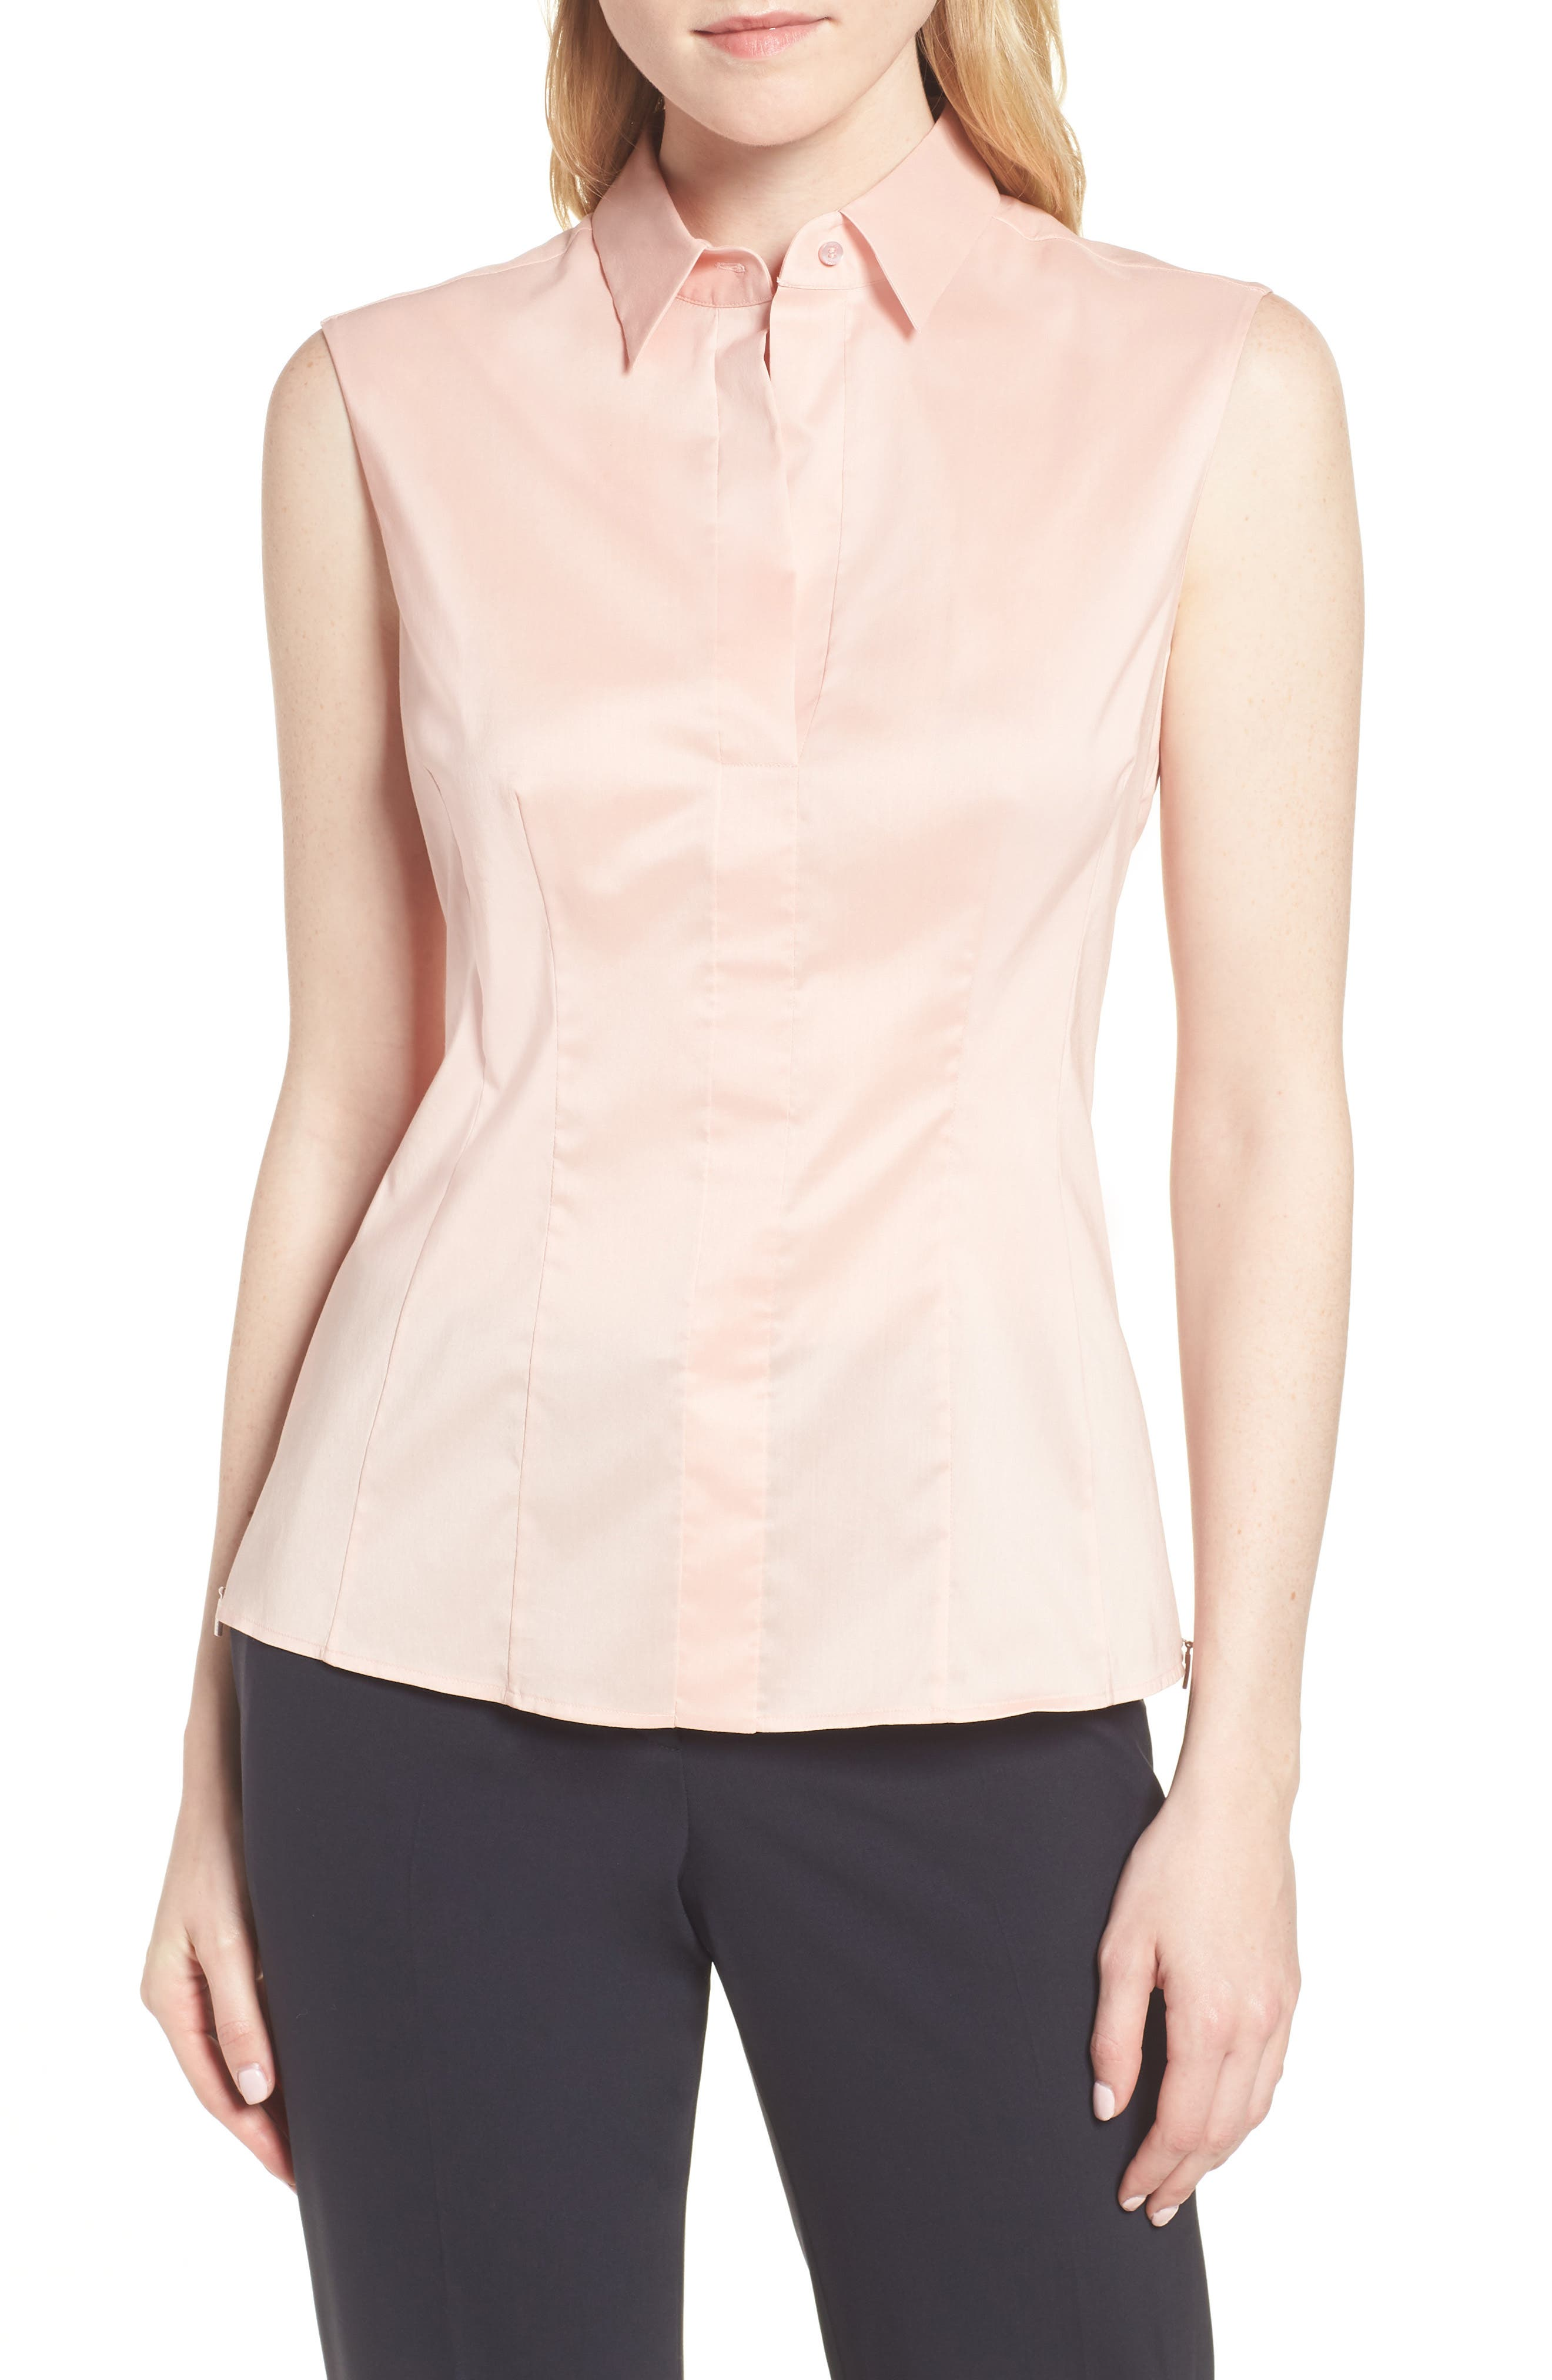 Bashiva Stretch Poplin Blouse,                         Main,                         color, Blush